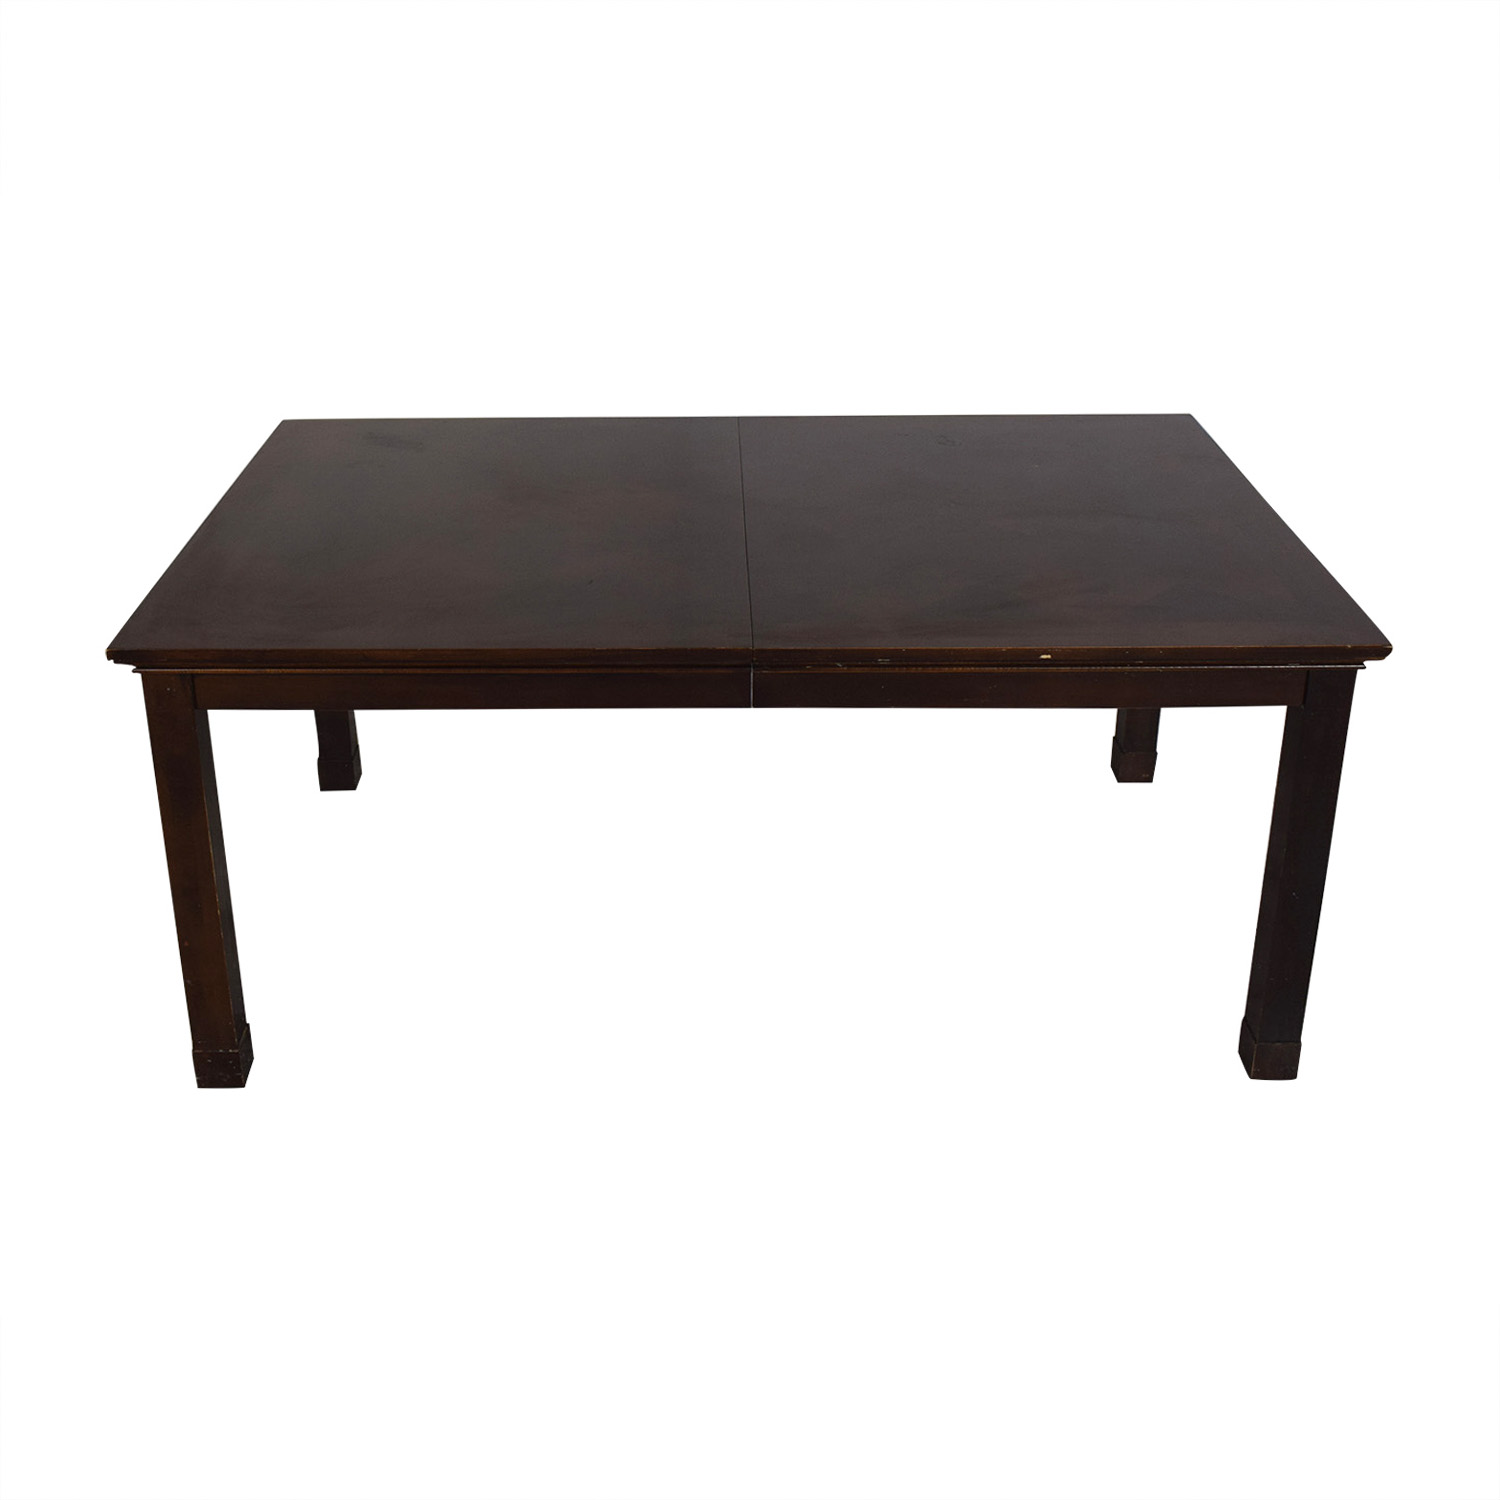 Macy's Macy's Extendable Dining Table Dark brown